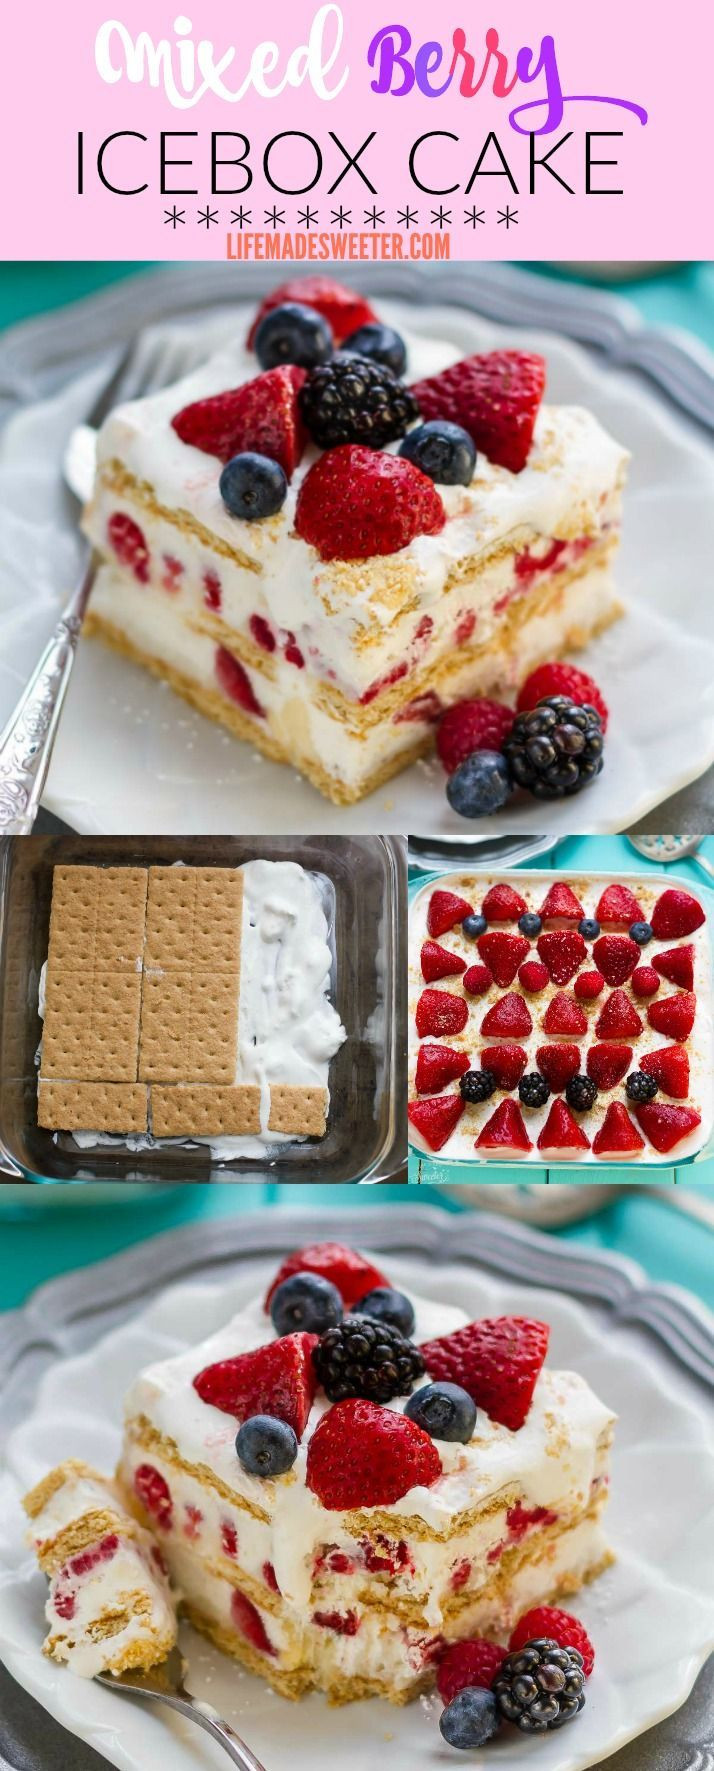 Good Summer Desserts  180 best Summertime images on Pinterest